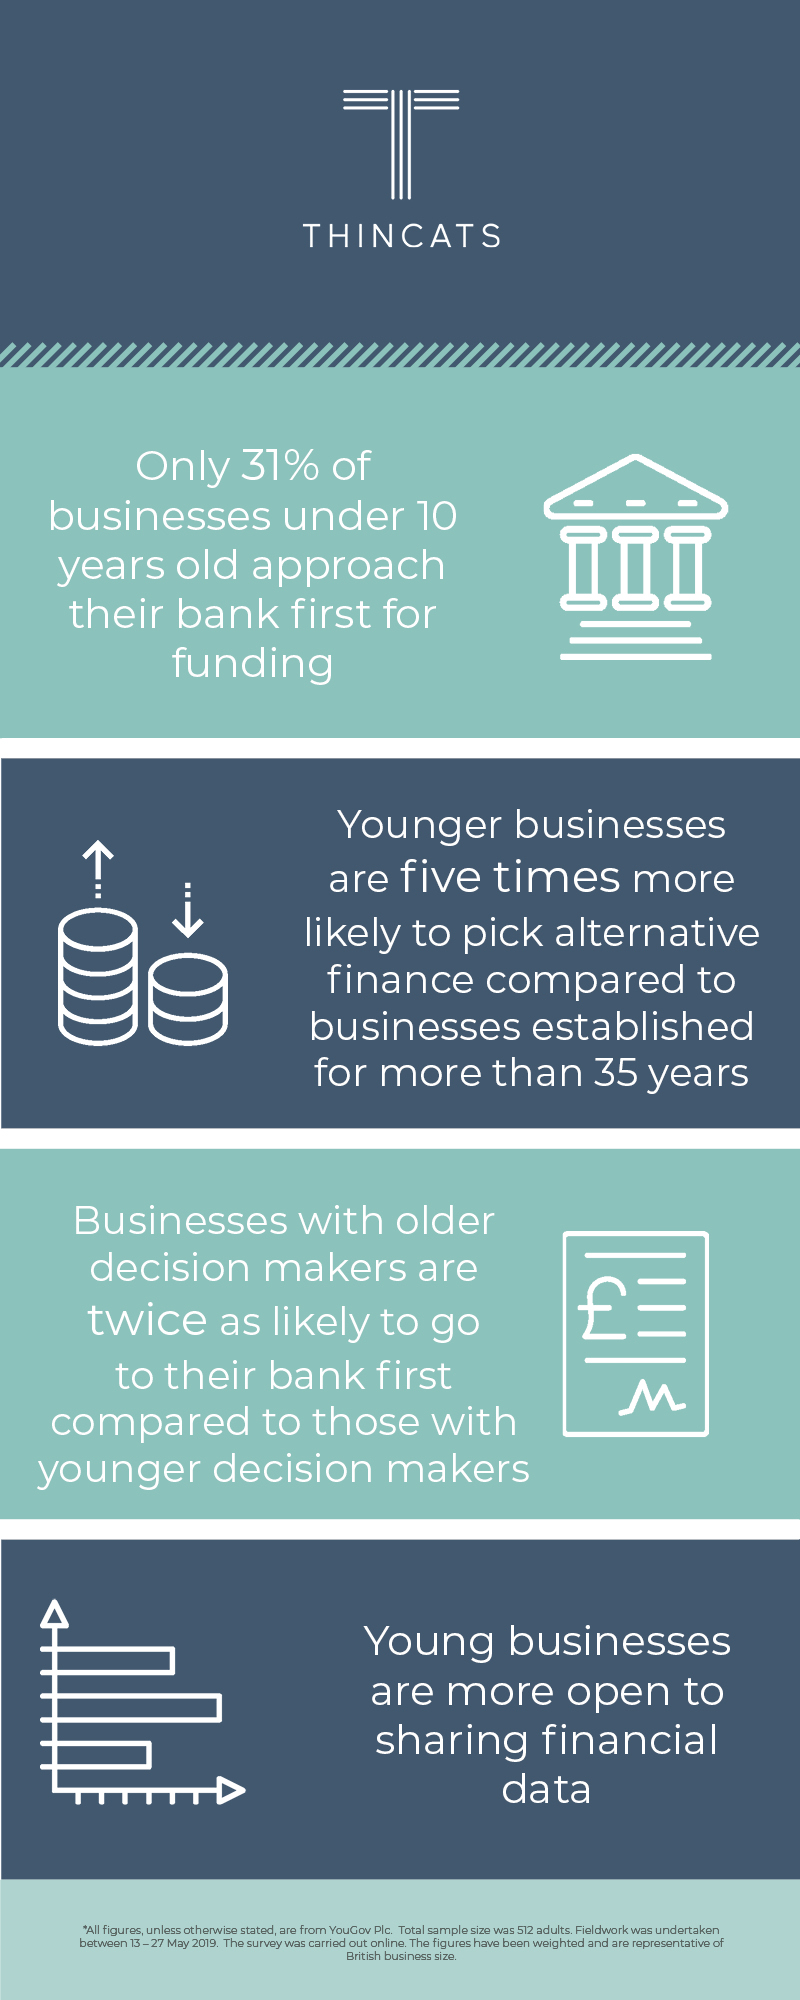 SME funding survey young business findings infographic